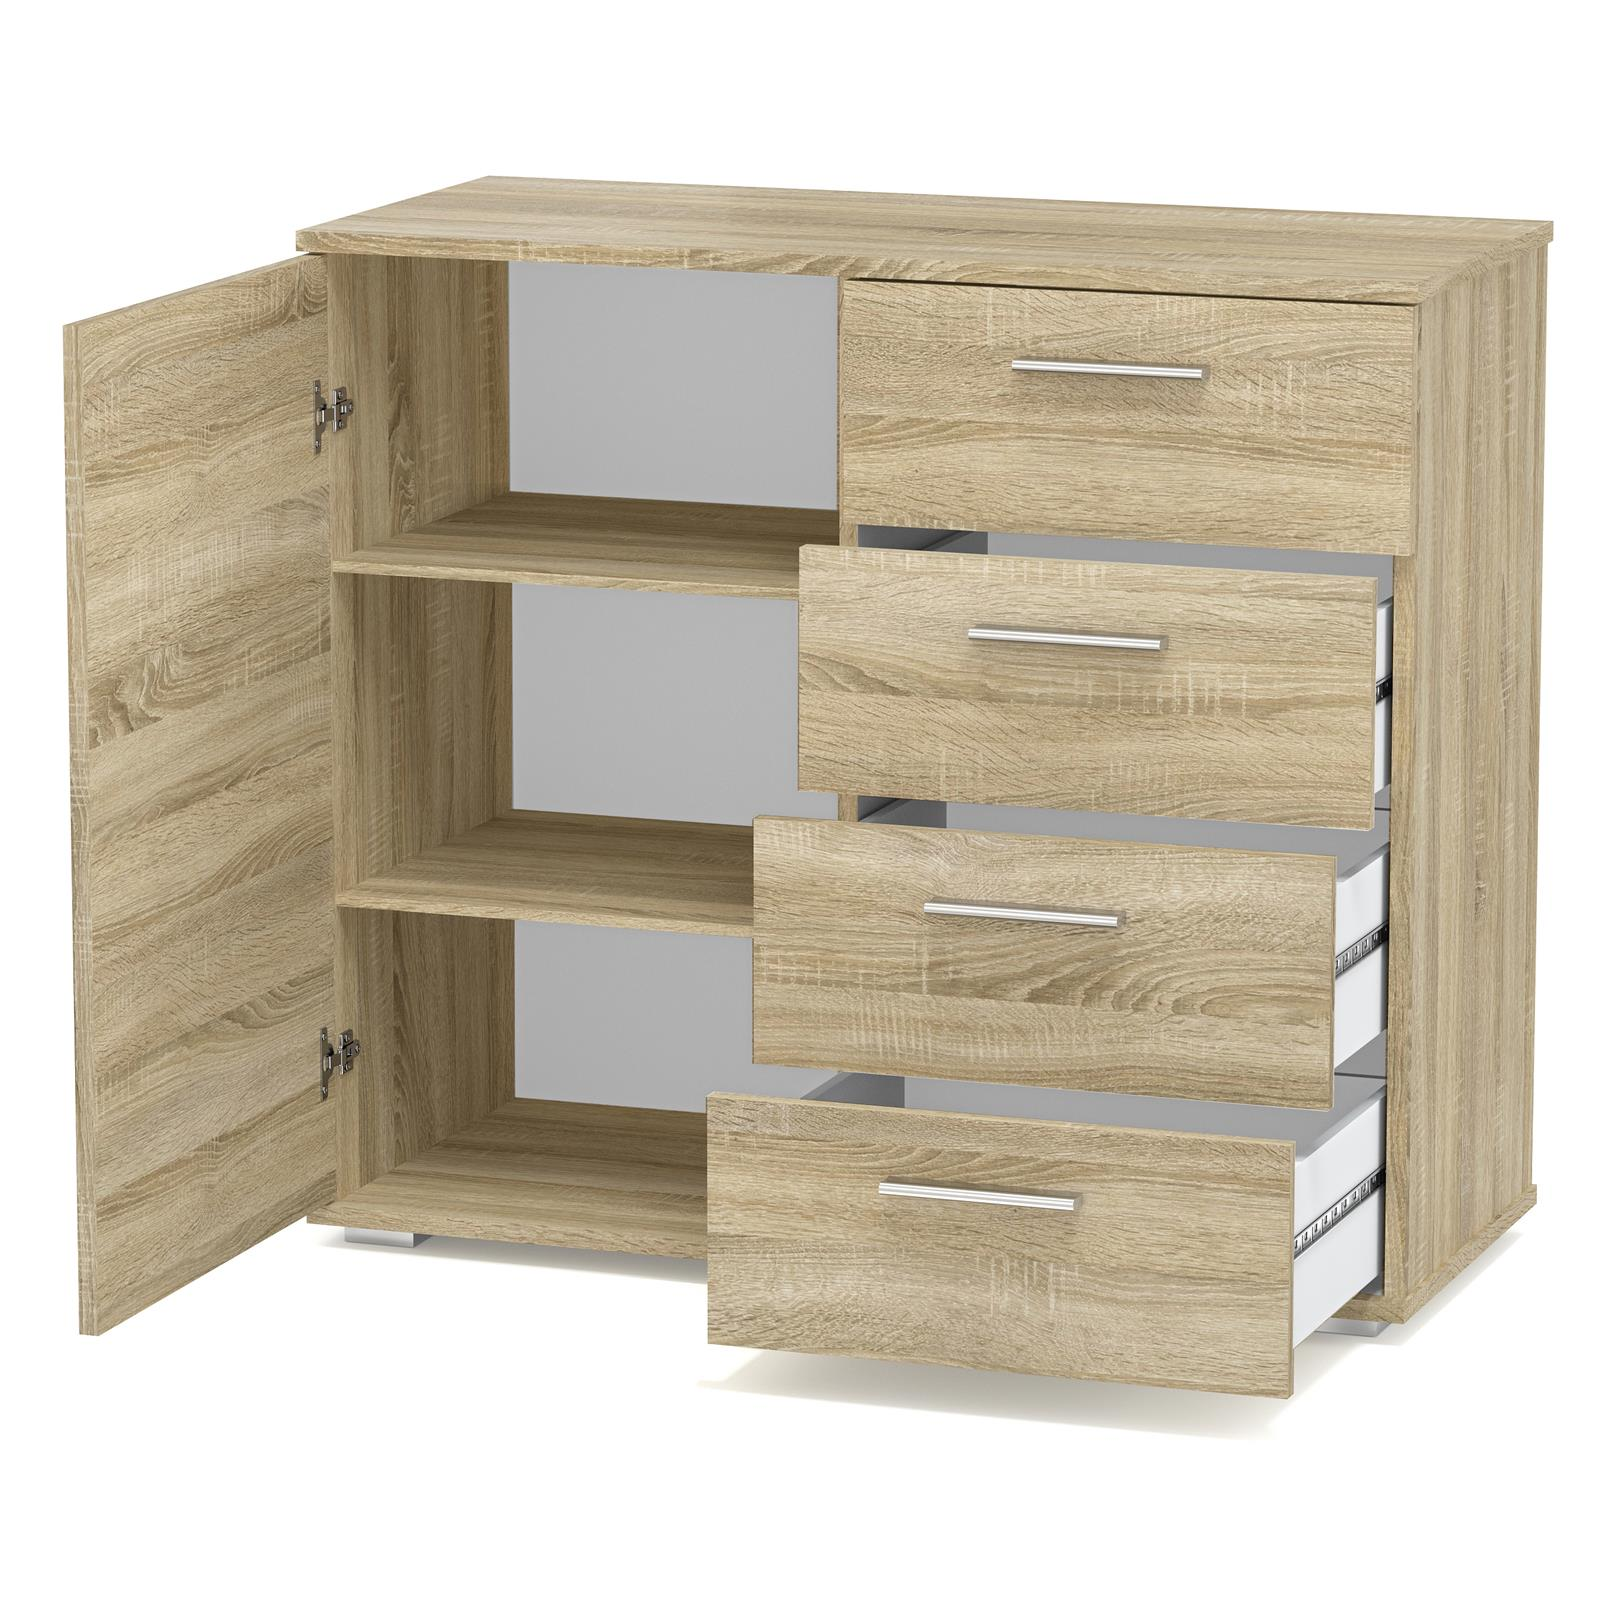 kommode sideboard schrank in verschiedenen farben highboard 4 schubladen ebay. Black Bedroom Furniture Sets. Home Design Ideas